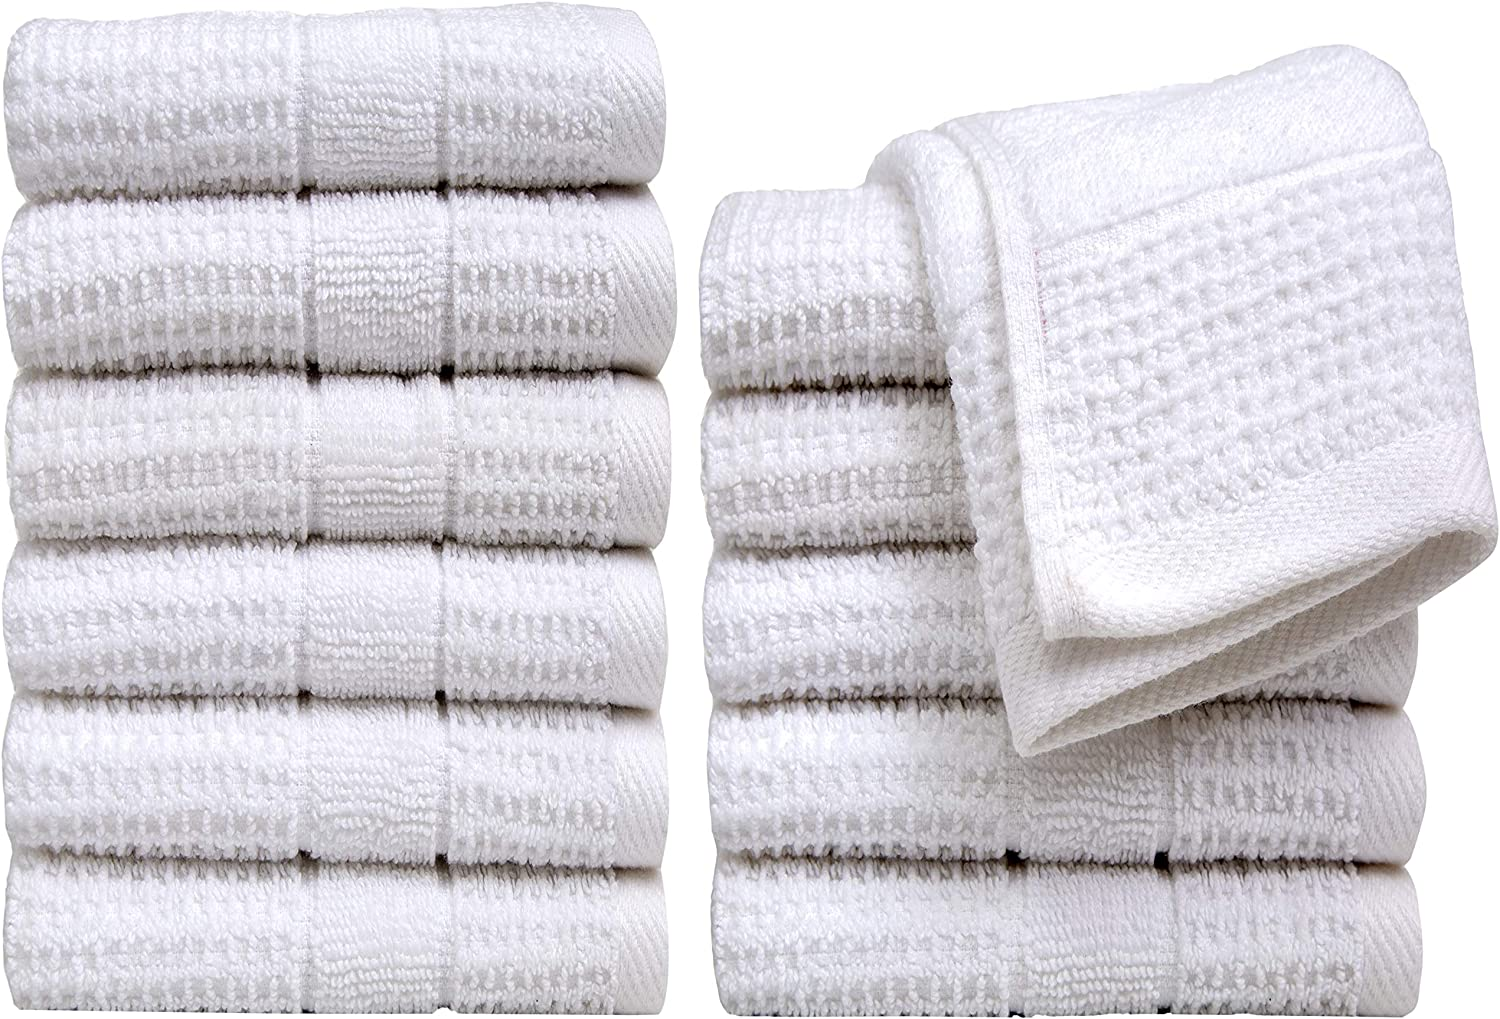 "Pleasant Home Washcloths Set - 12 Pack (12"" x 12"") – 488 GSM- 100% Ring Spun Cotton Wash Cloth - Super Soft and Highly Absorbent Face Towels (White, Waffle Design)"